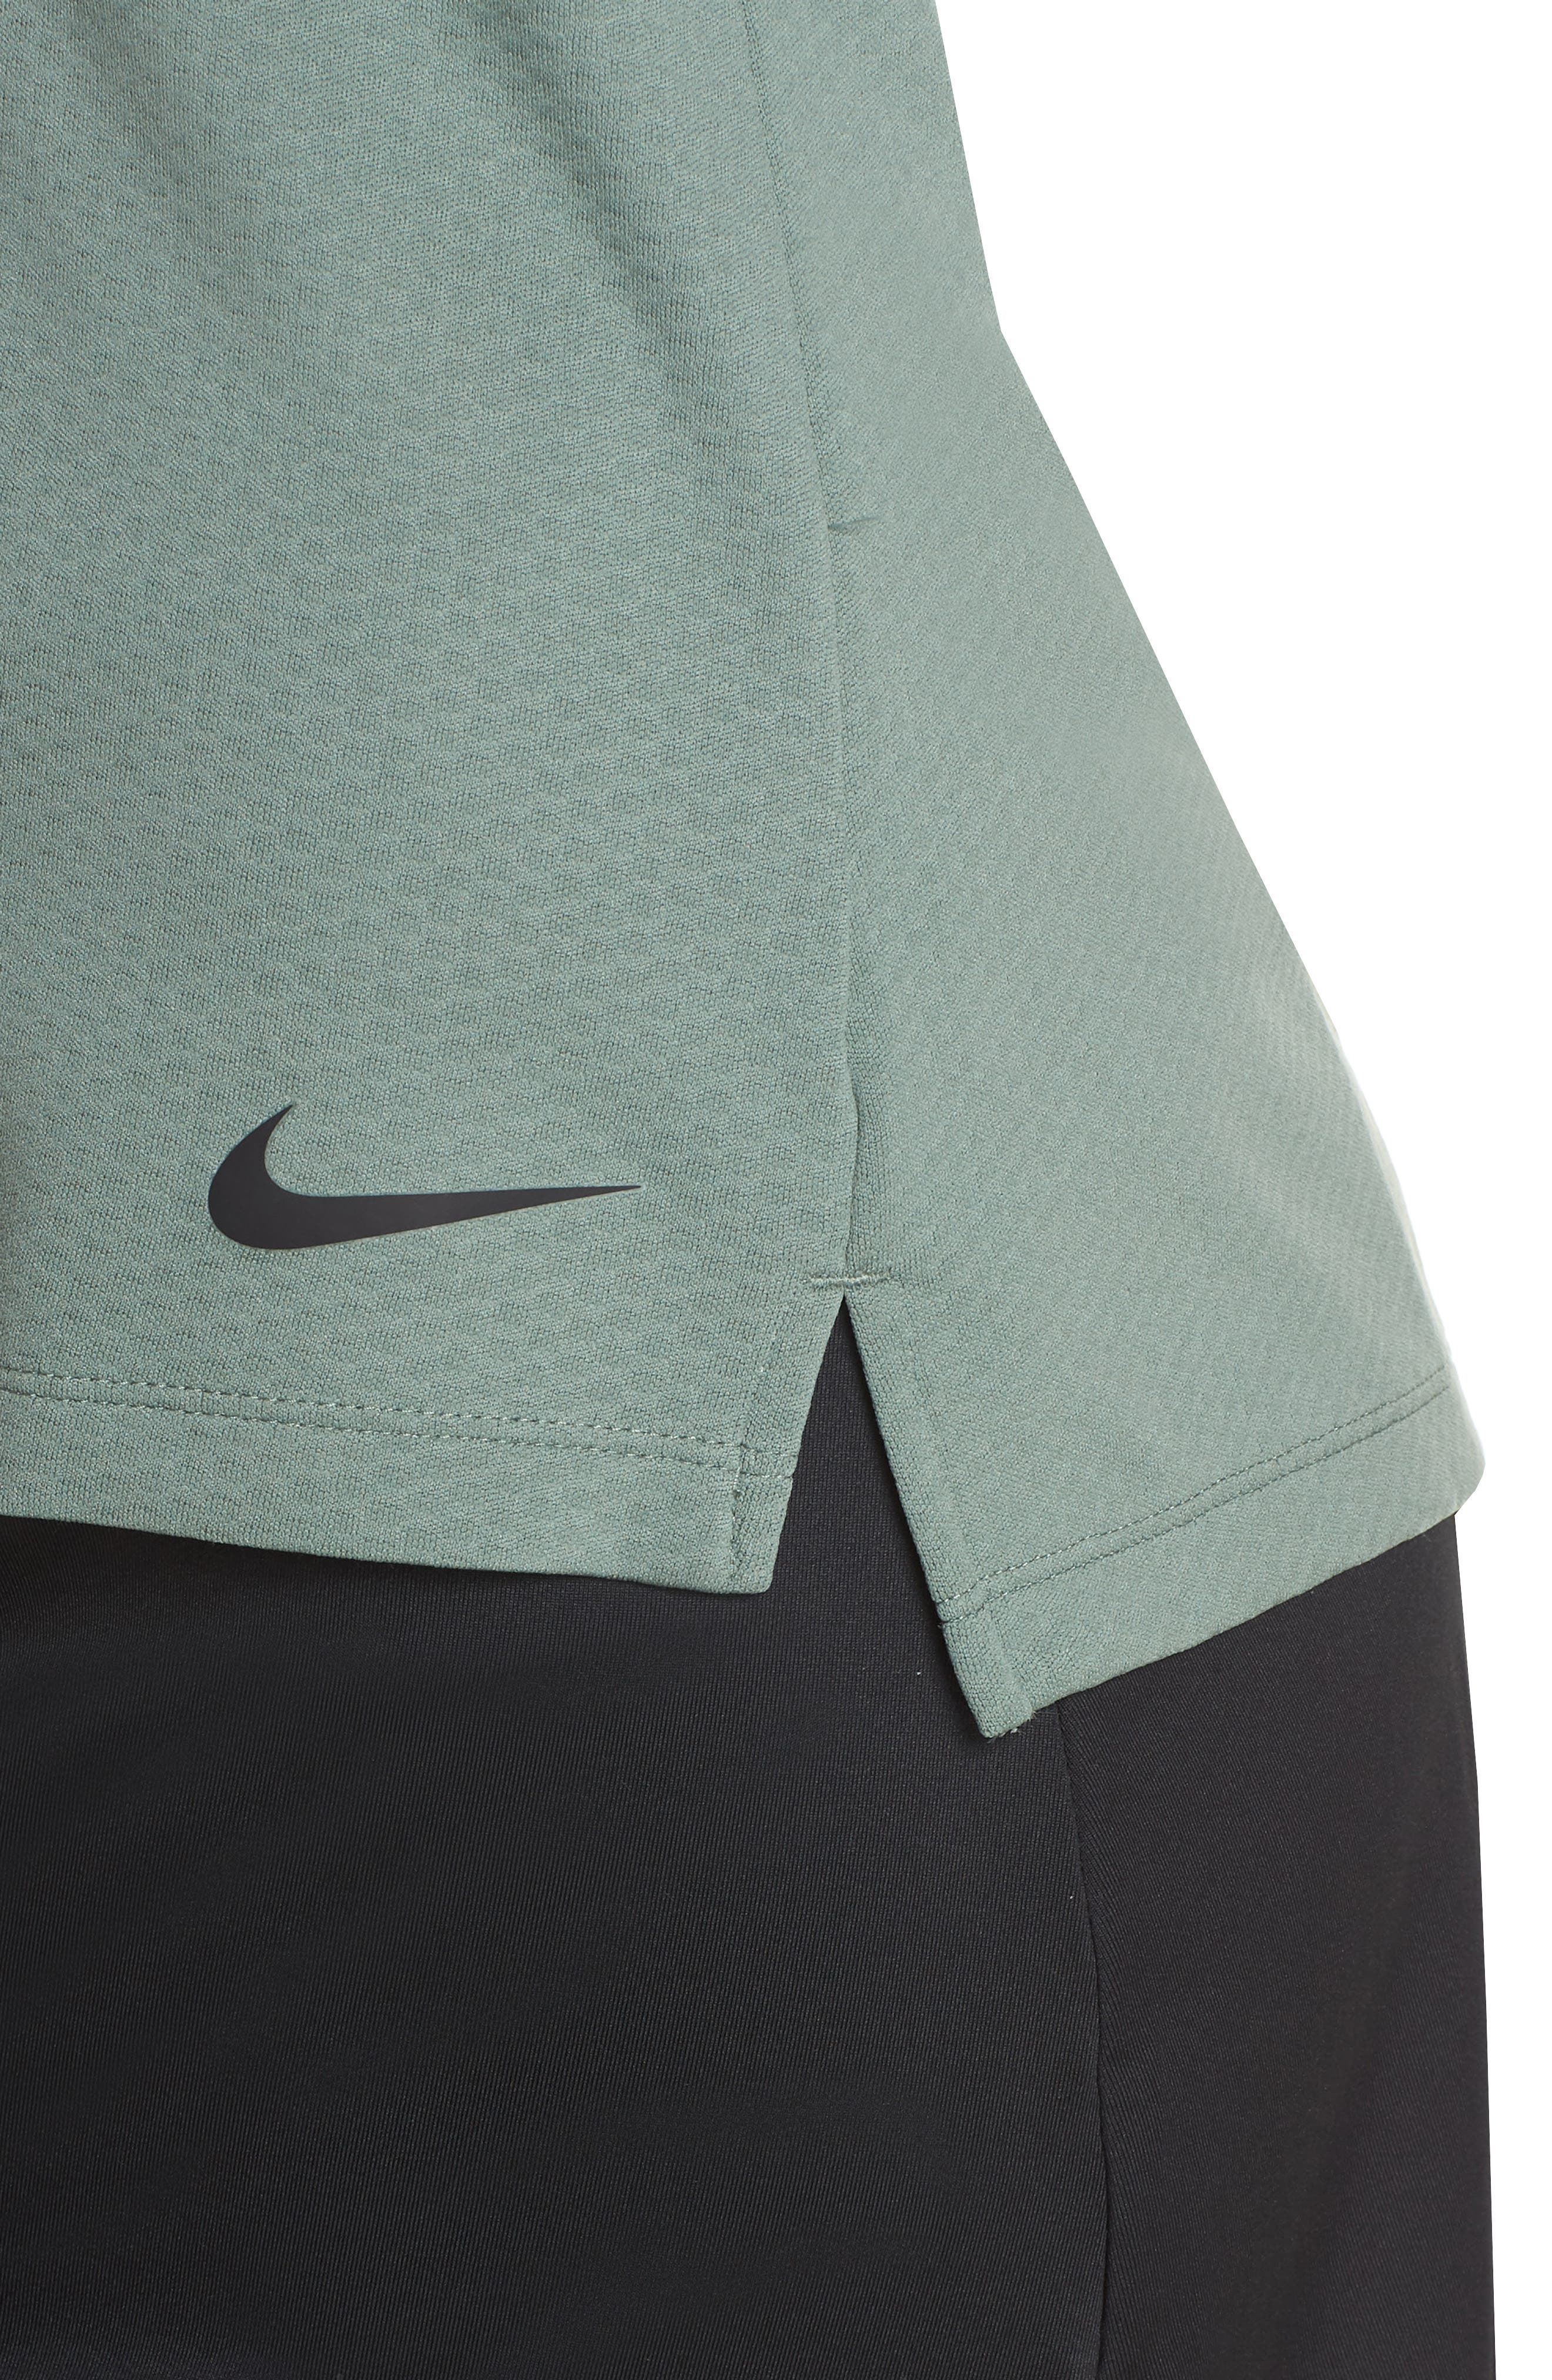 Dry Golf Polo,                             Alternate thumbnail 6, color,                             Clay Green/ Flint Silver